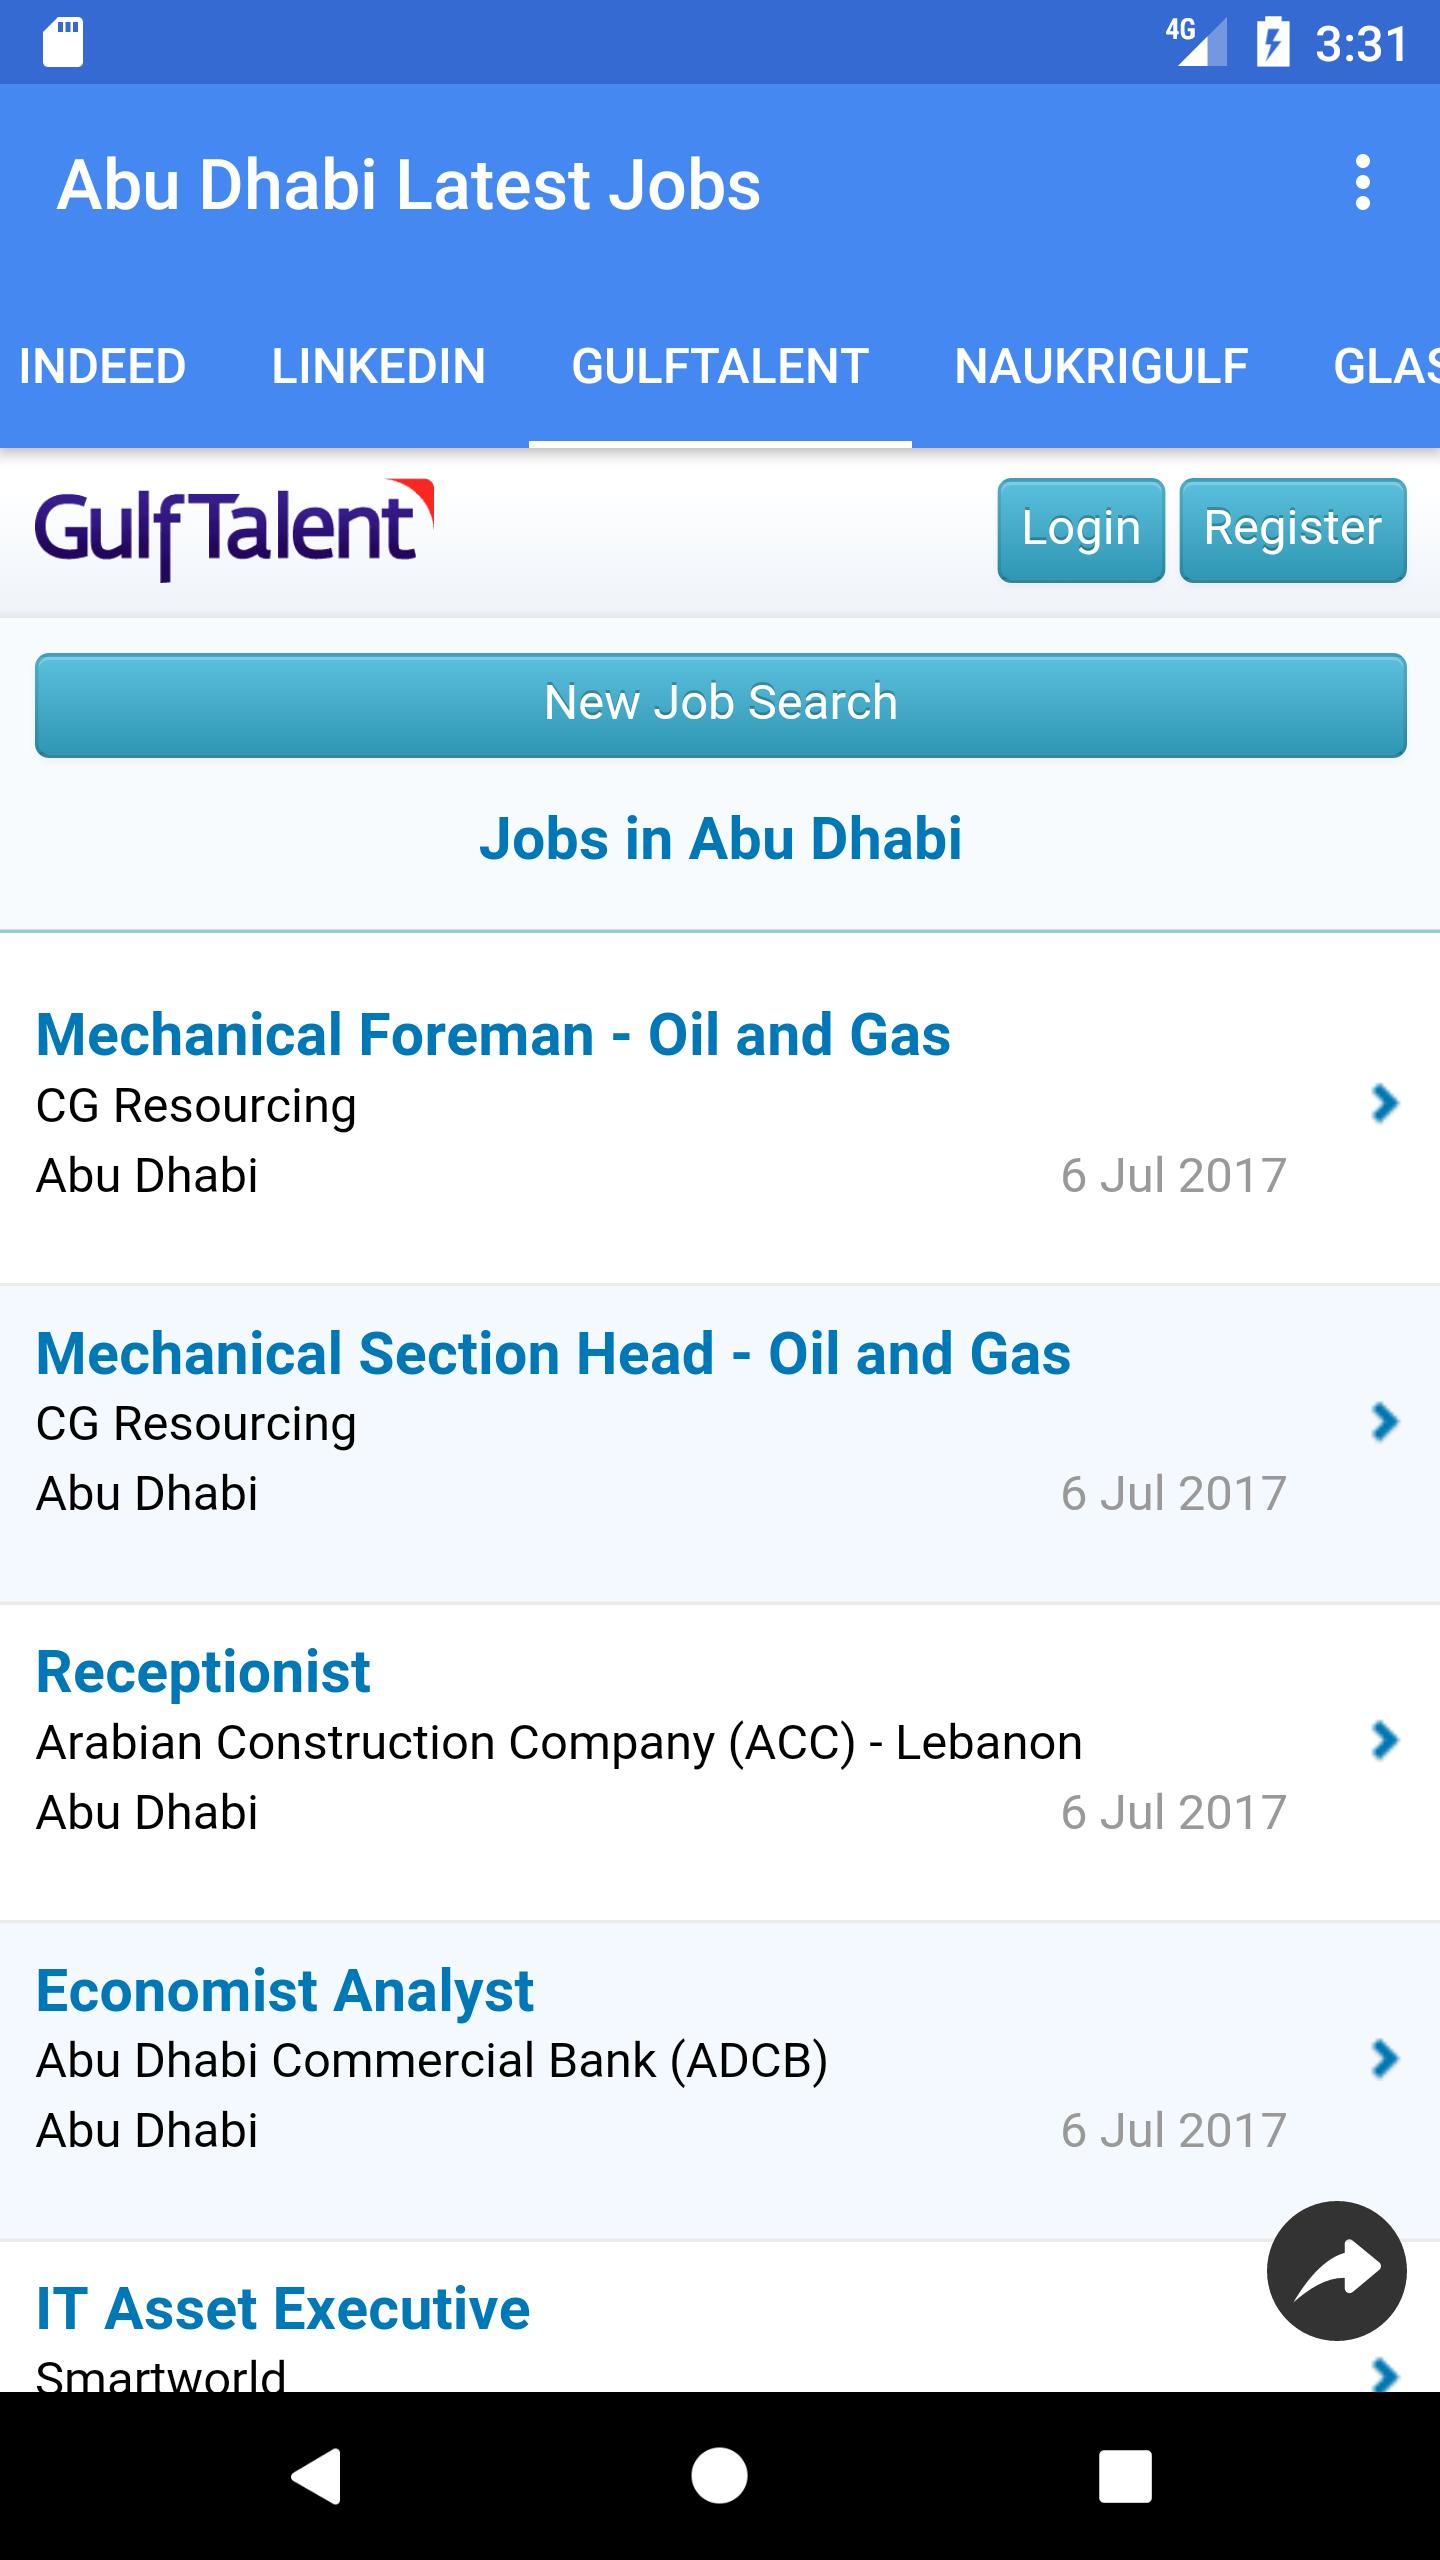 🇦🇪Jobs in Abu Dhabi - UAE🇦🇪 for Android - APK Download